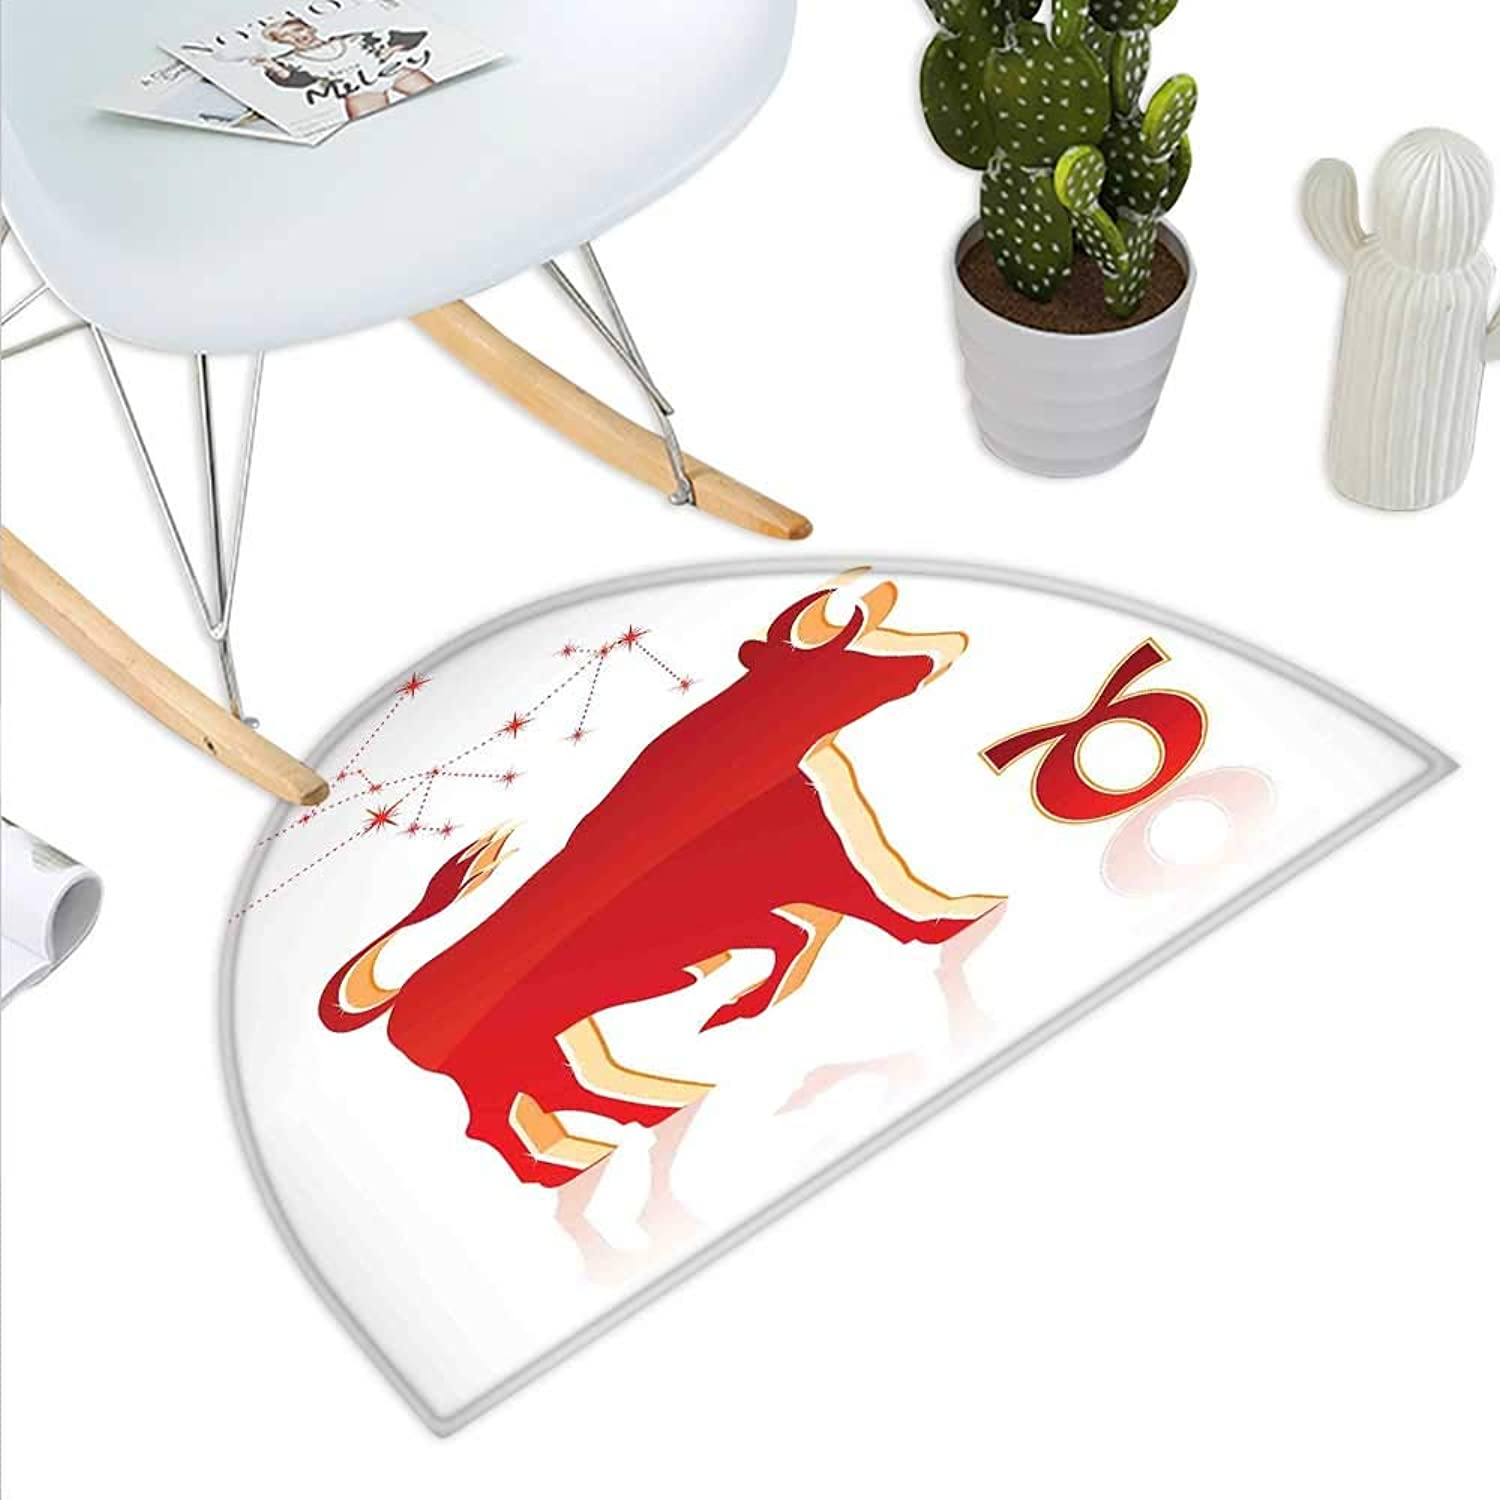 Zodiac Taurus Semicircle Doormat Vibrant Animal Silhouette with Constellation of The Hgoldscope Halfmoon doormats H 43.3  xD 64.9  Vermilion and Pale orange